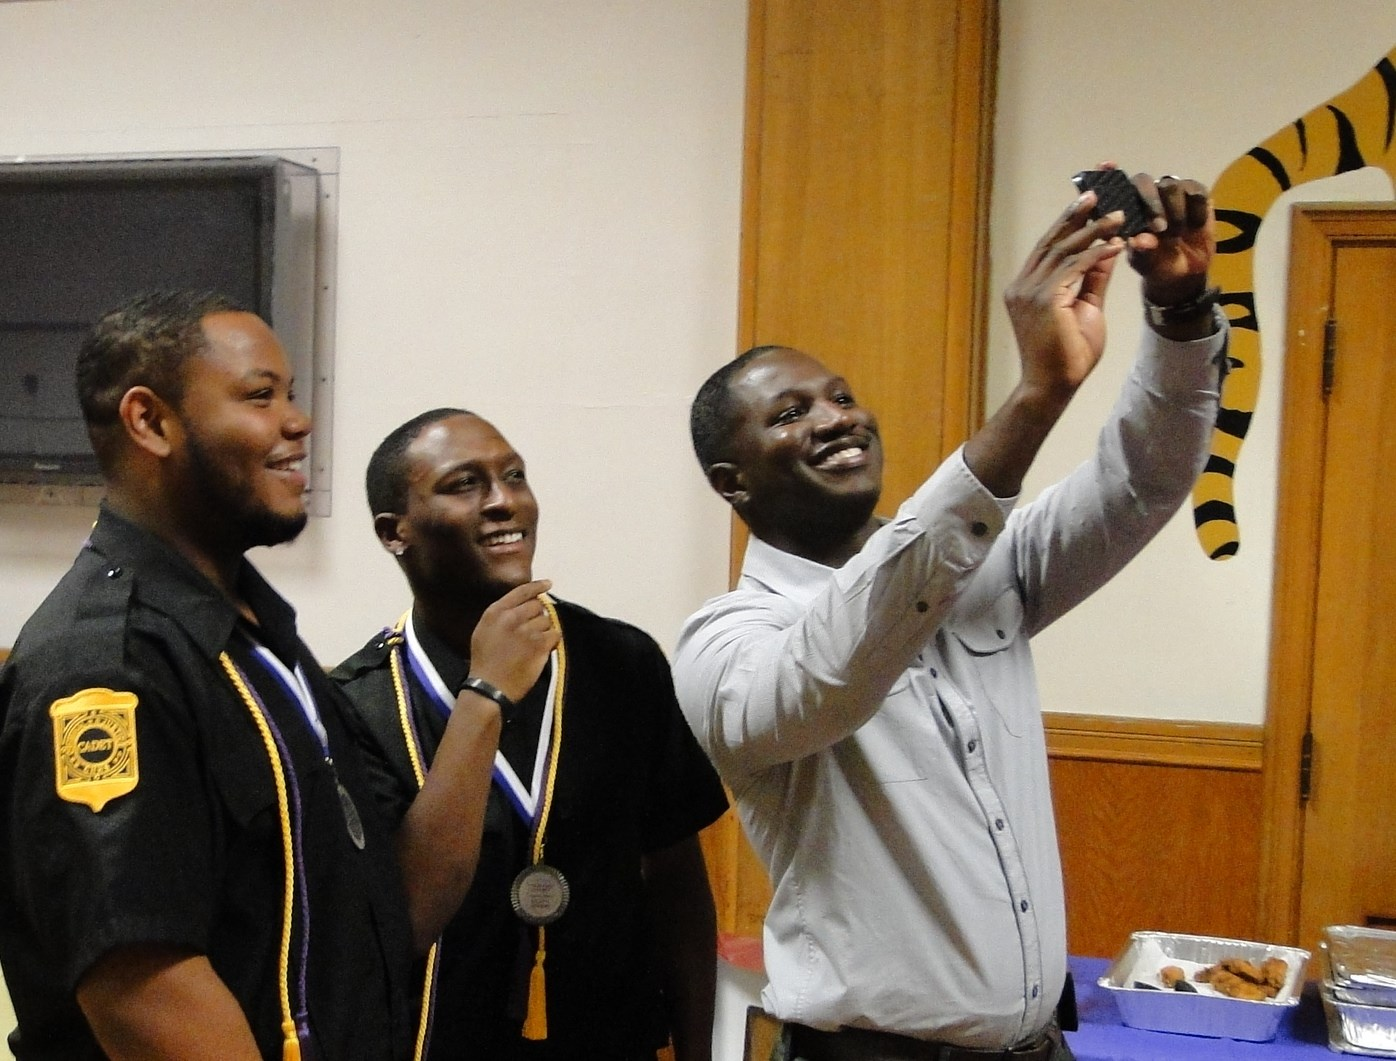 Counselor David Peake takes a selfie with two graduates.